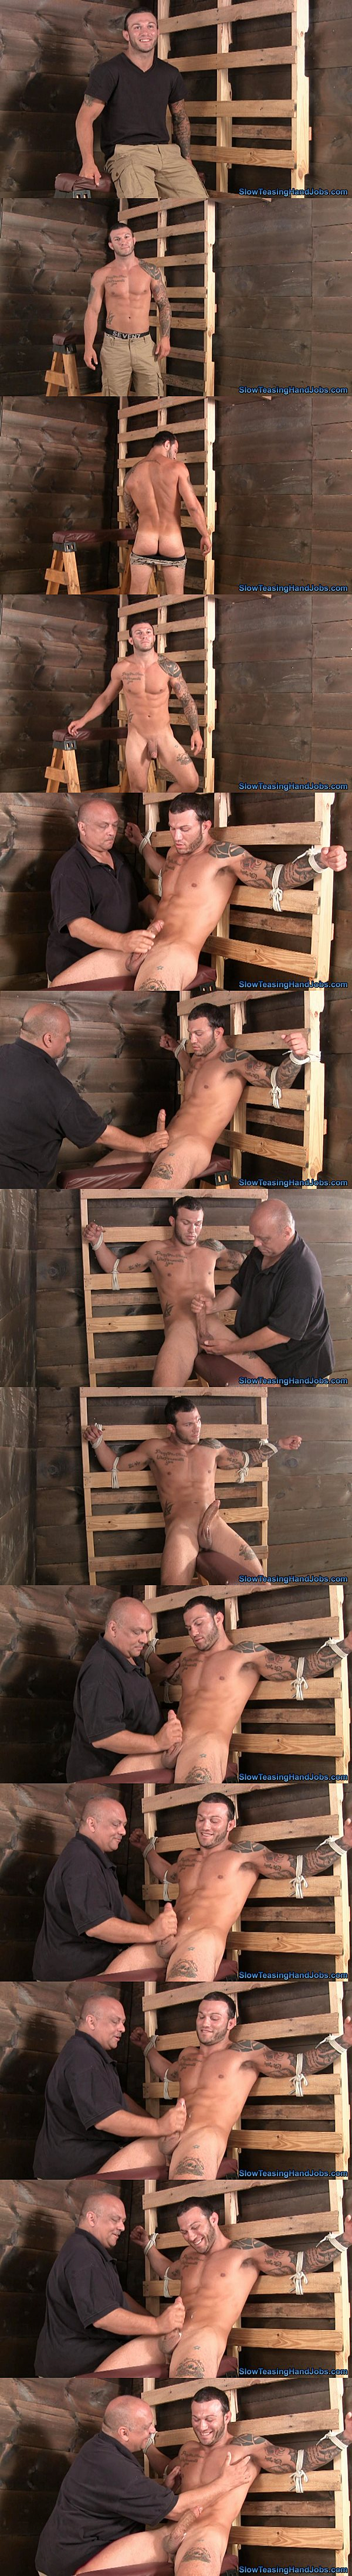 Muscular straight stud Tony gets edged and jerked off in Hold it for 60 Seconds at Slowteasinghandjobs 02